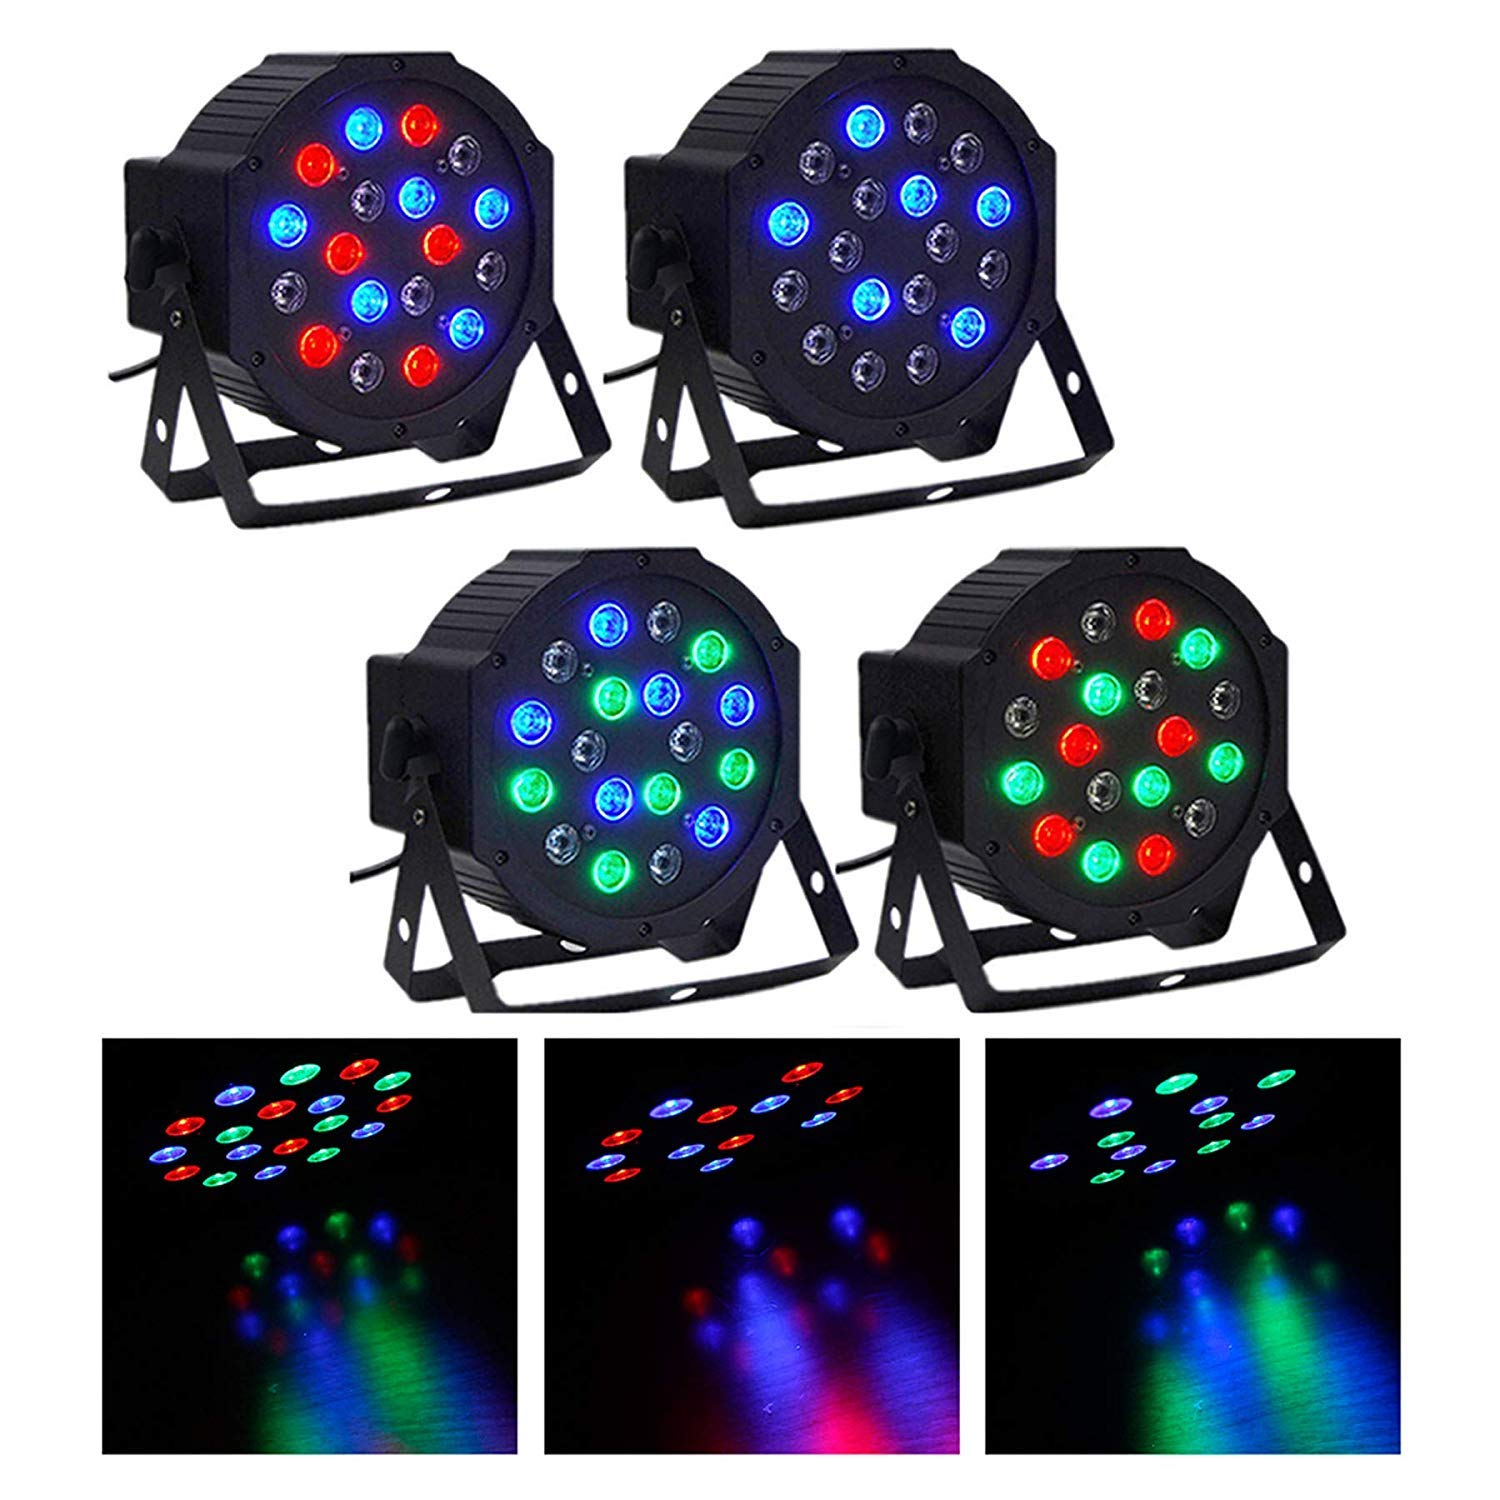 Chauvet EZgobo Rechargeable LED Gobo Lighting Effect with 1 Year Free Extended Warranty